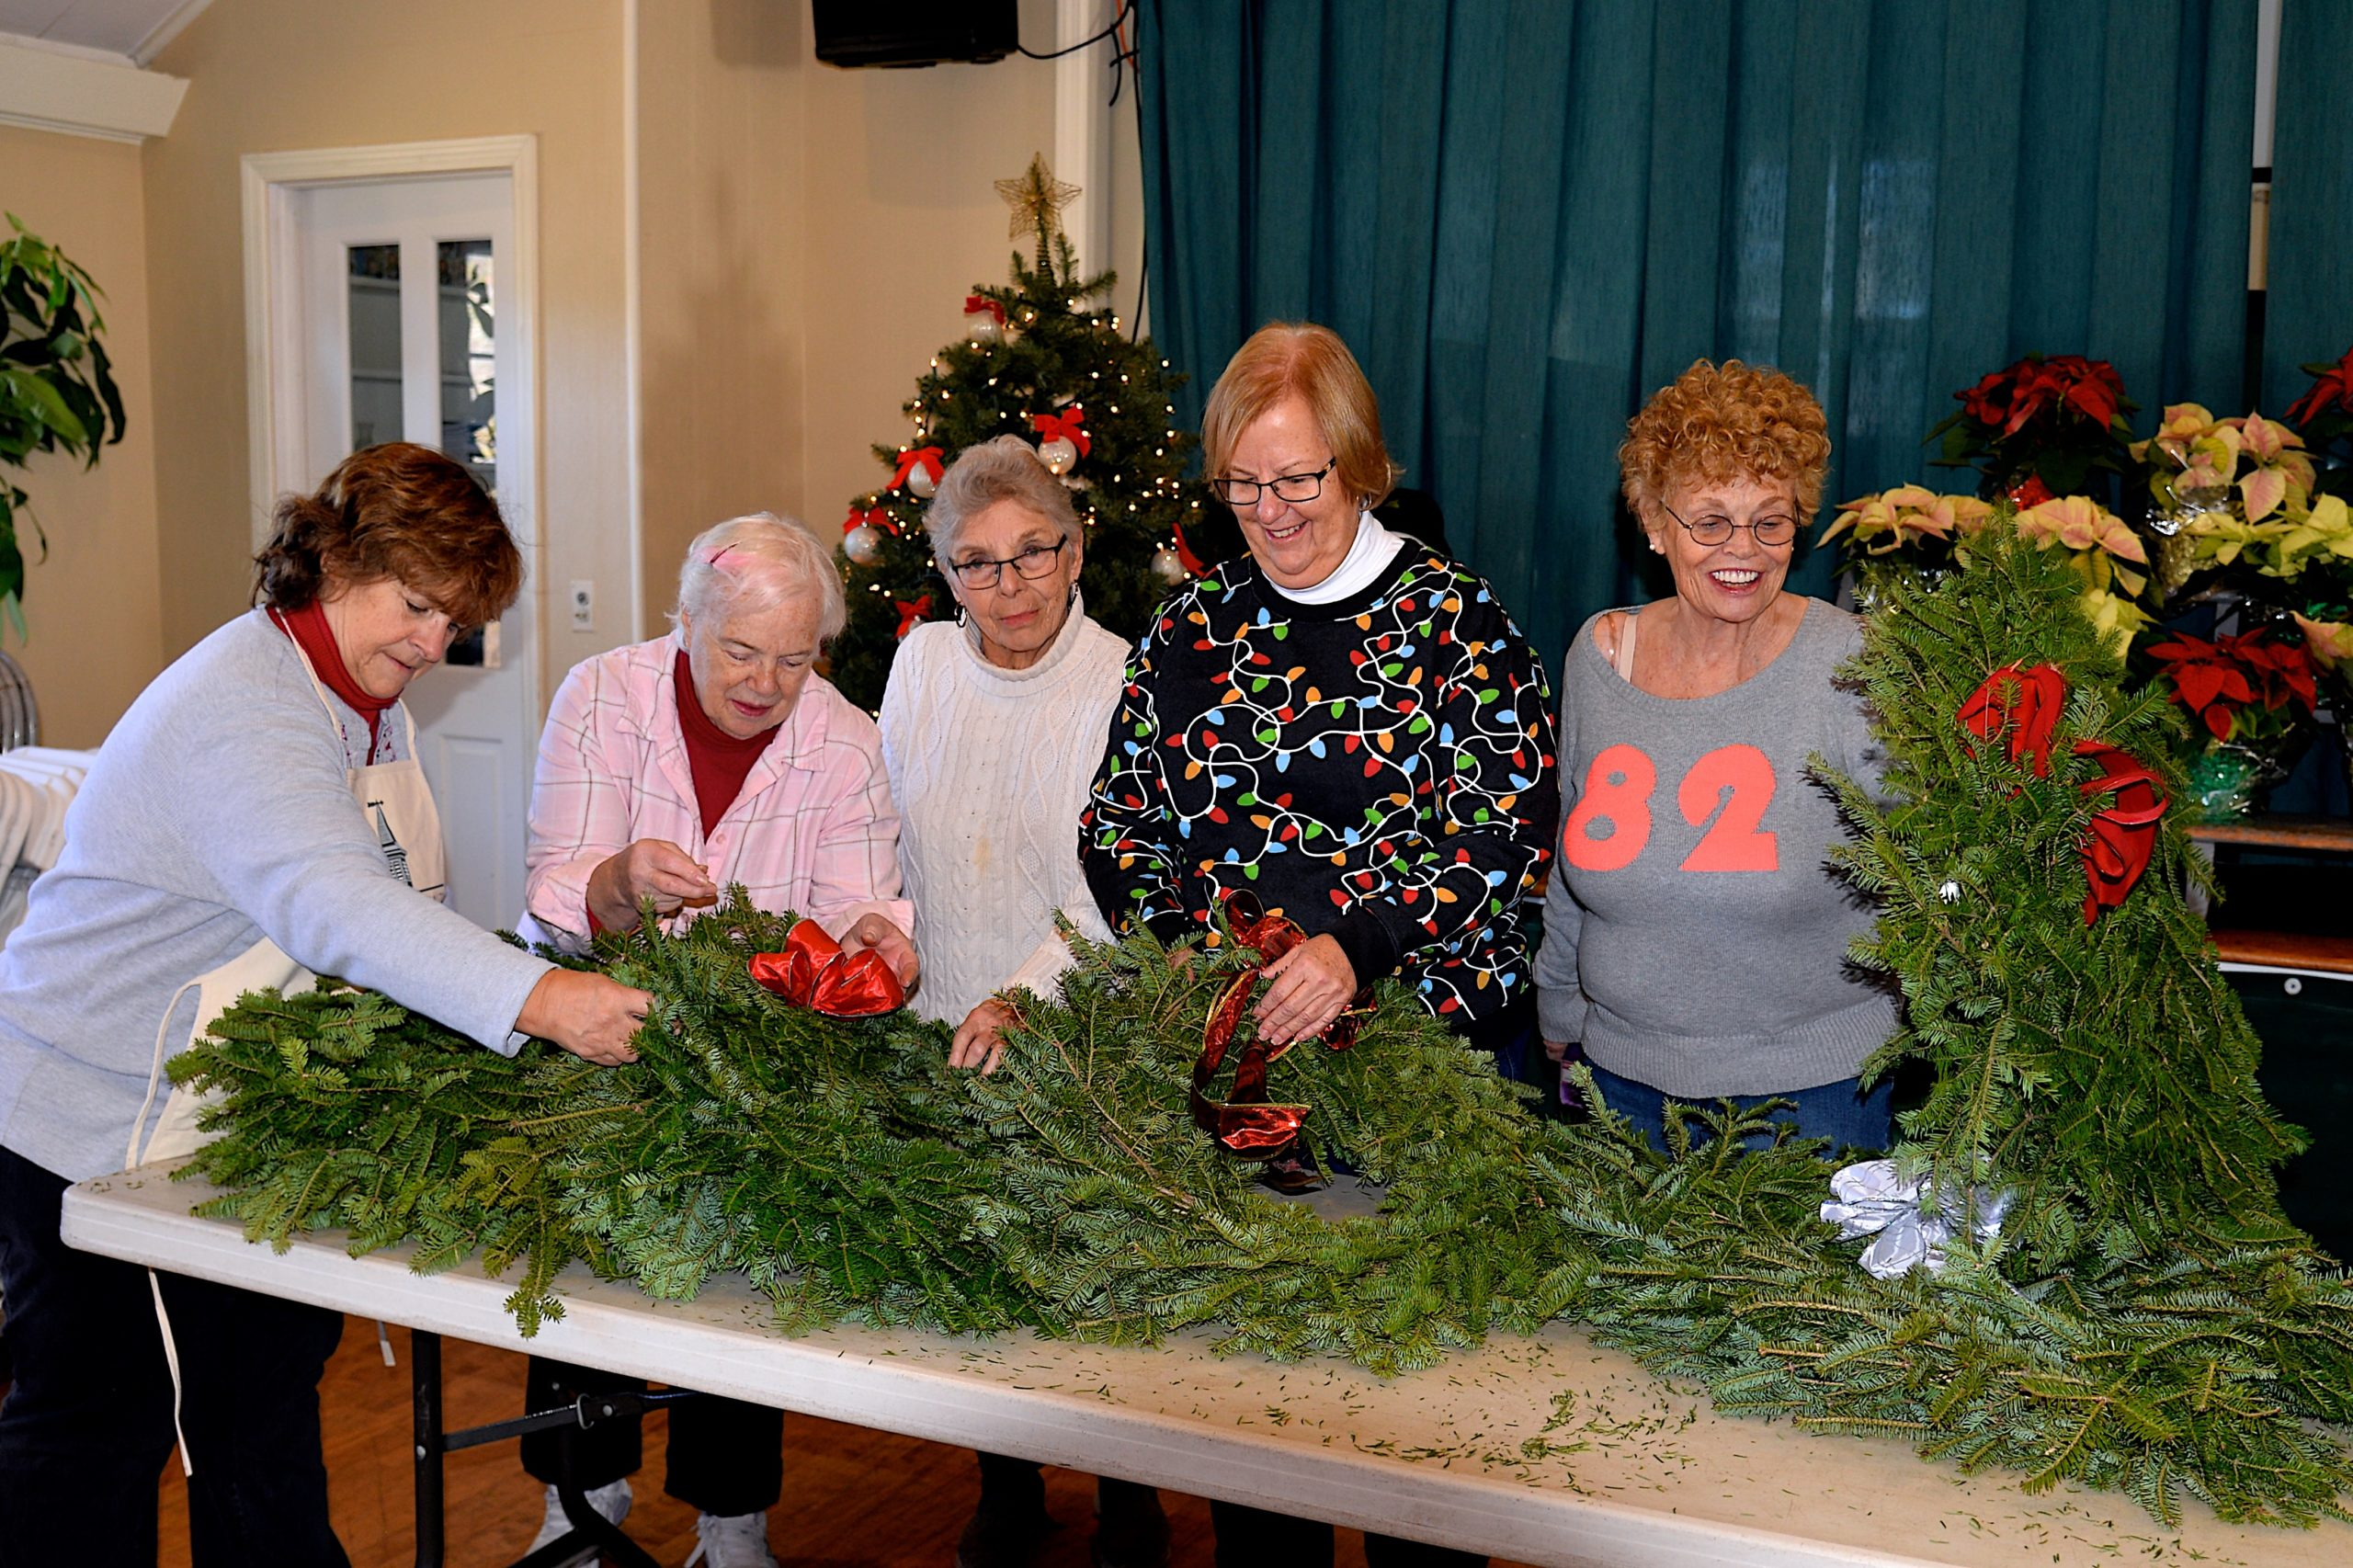 Wreaths were made and quickly sold at the Springs Community Presbyterian Churchon  Saturday. From left, Wendy Hall, Deanna Tikkanen, Dru Raley, Pastor Linda Maconochie and Pat Titus were there to help out. KYRIL BROMLEY